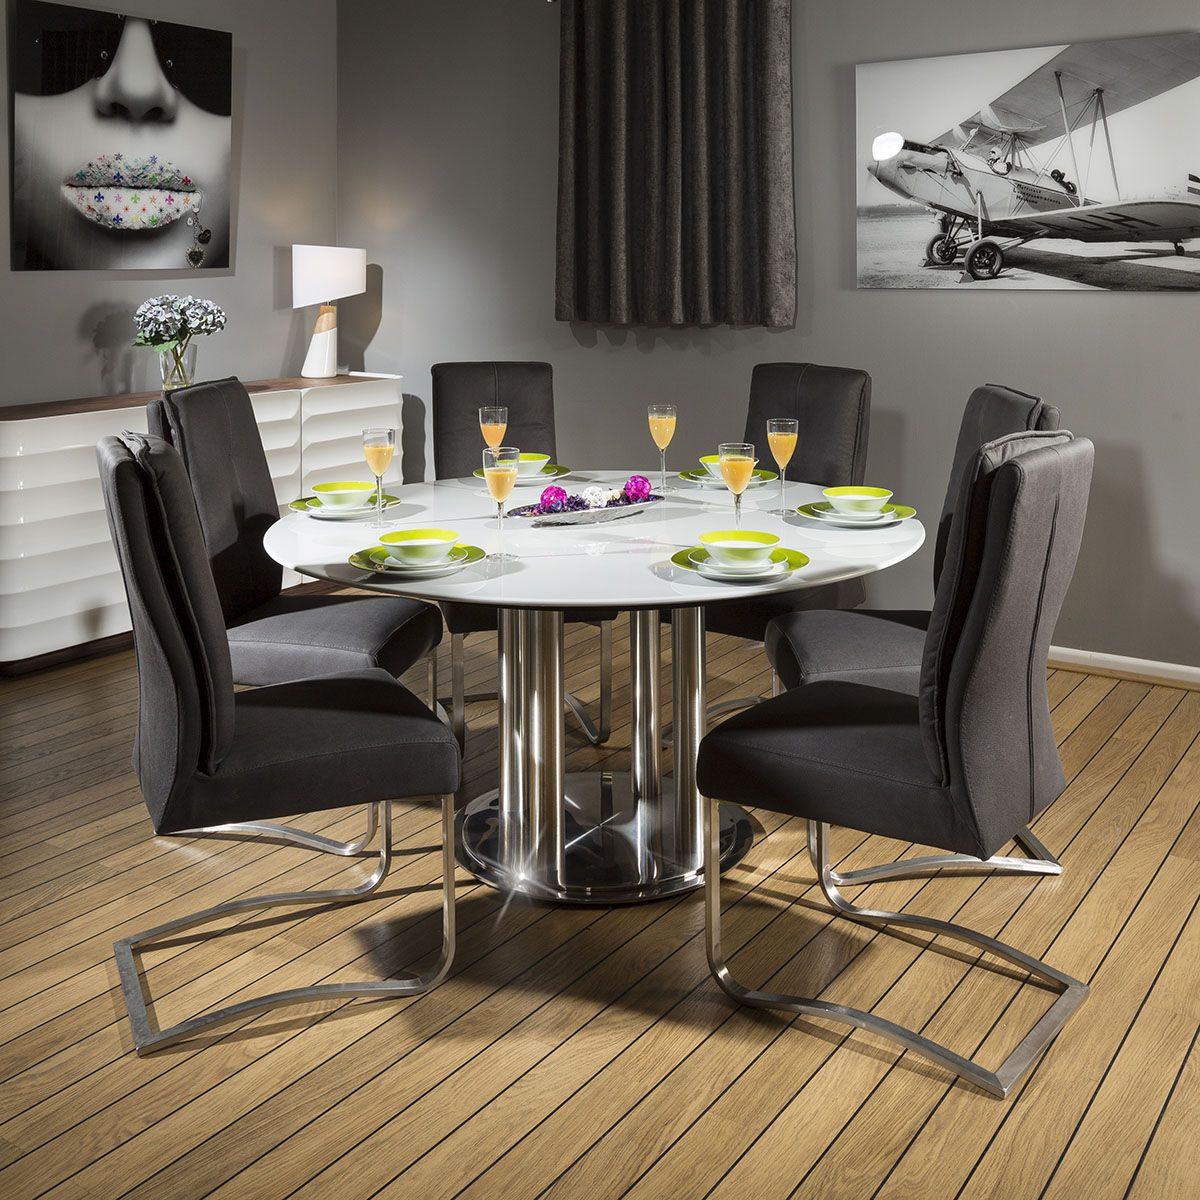 Round Dining Set Grey 150cm Dia Corian Table 6 X Deep Grey Chairs